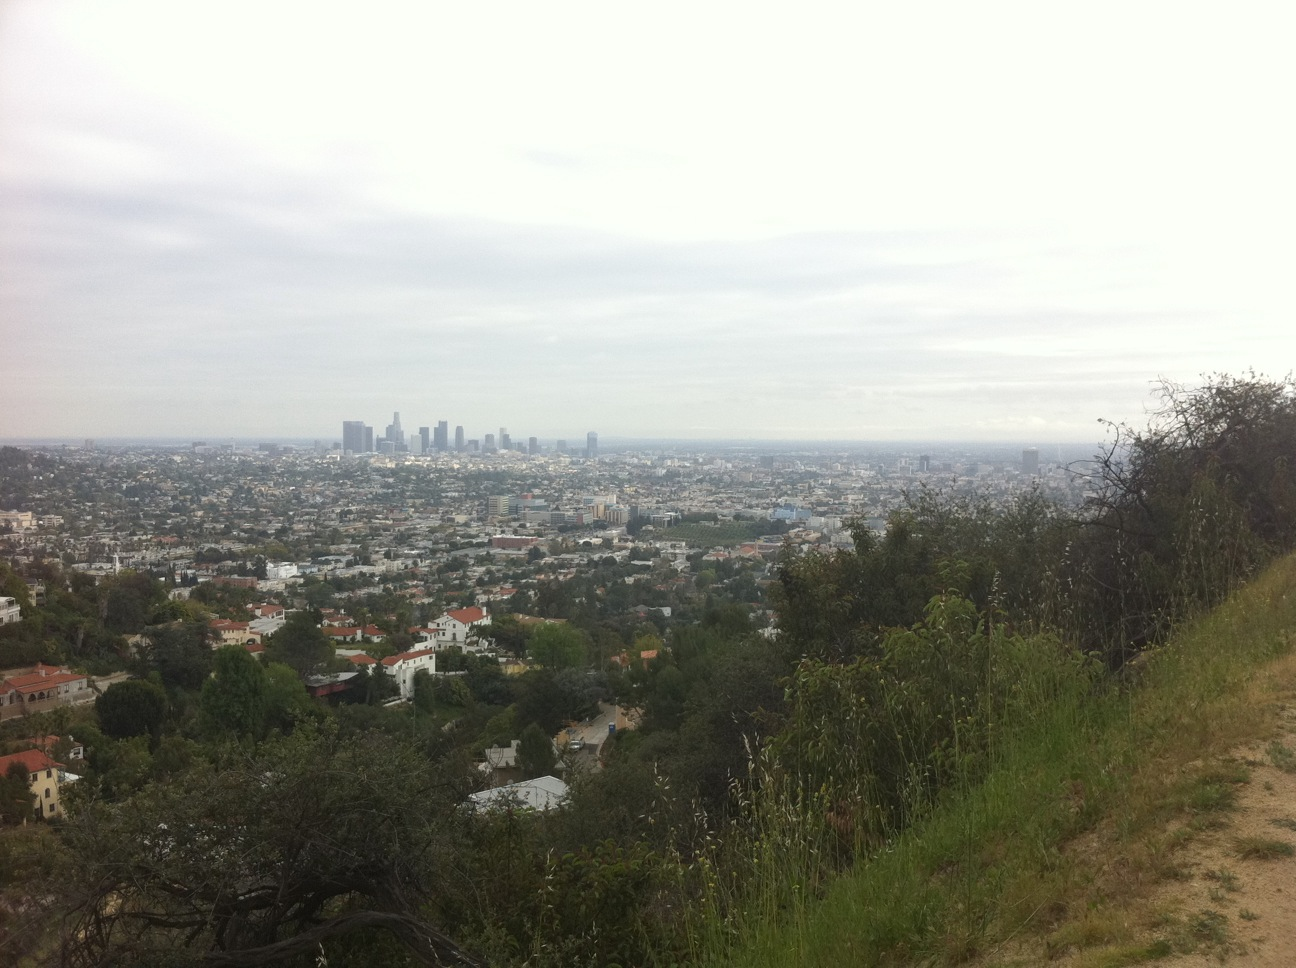 The view of downtown L.A. from Griffith Park.